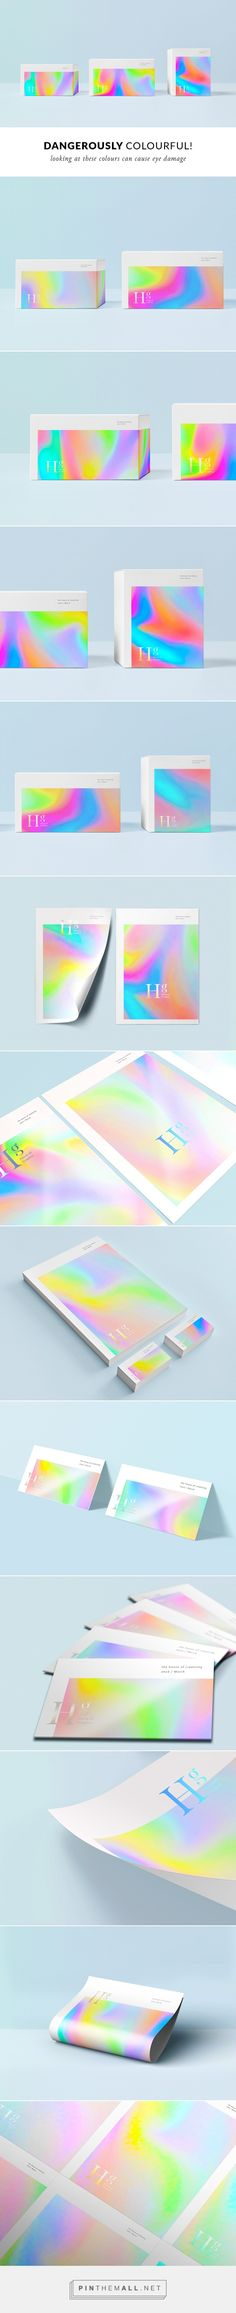 Holographic feeling without metallic effect Gfx Design, Layout Design, Print Design, Brand Packaging, Packaging Design, Saloon, Bussiness Card, Banners, Identity Design